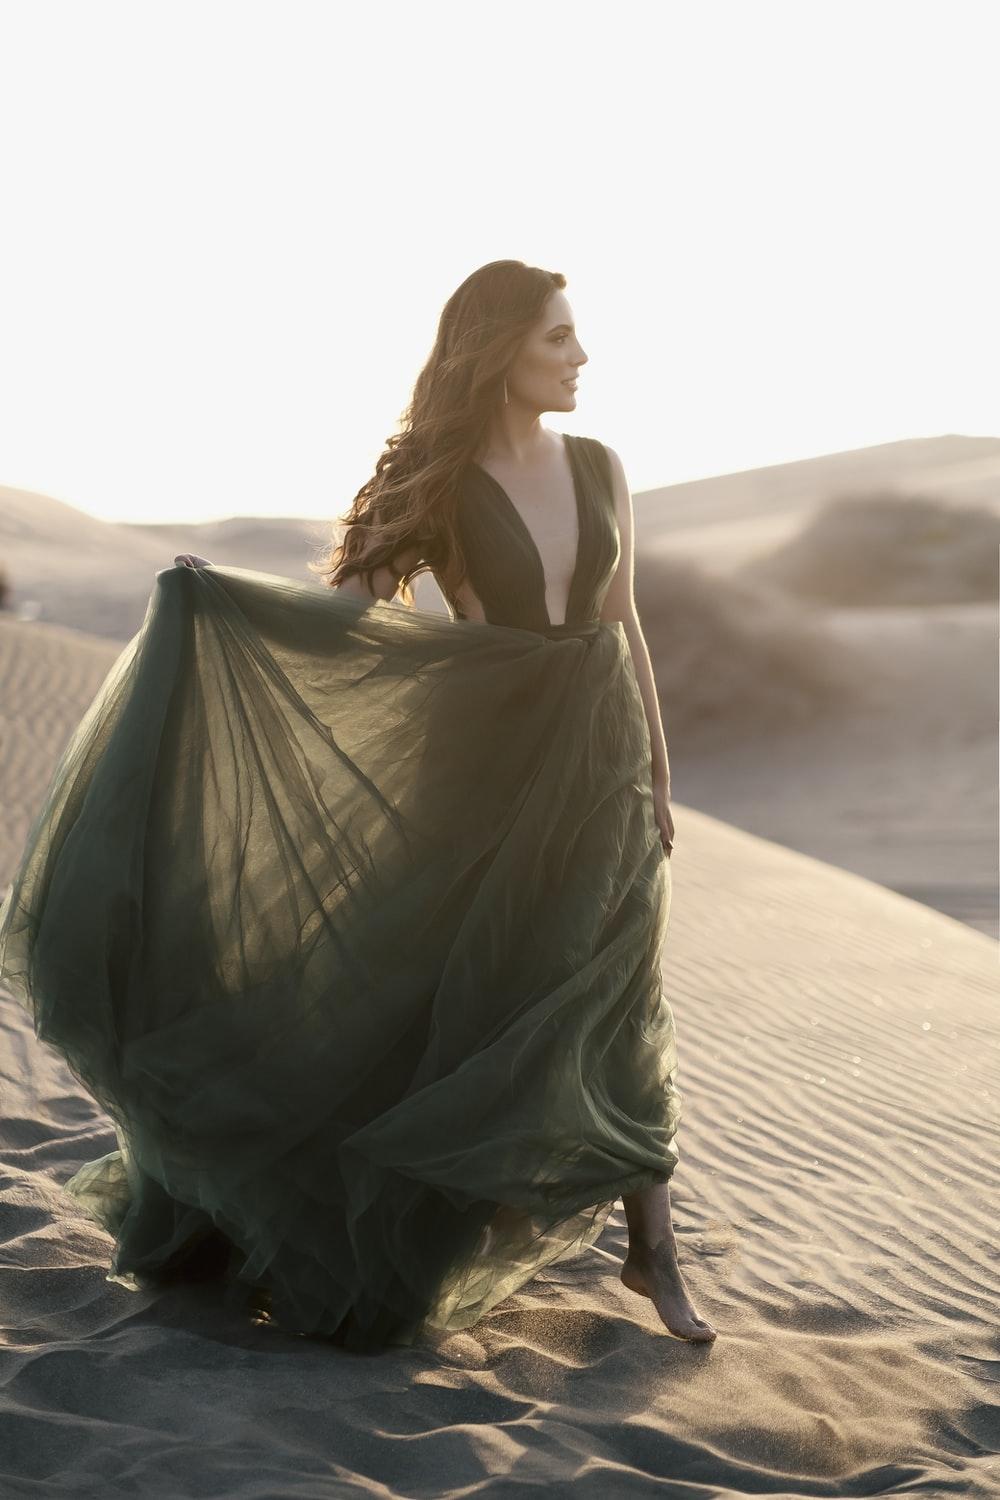 woman in green dress standing on brown sand during daytime